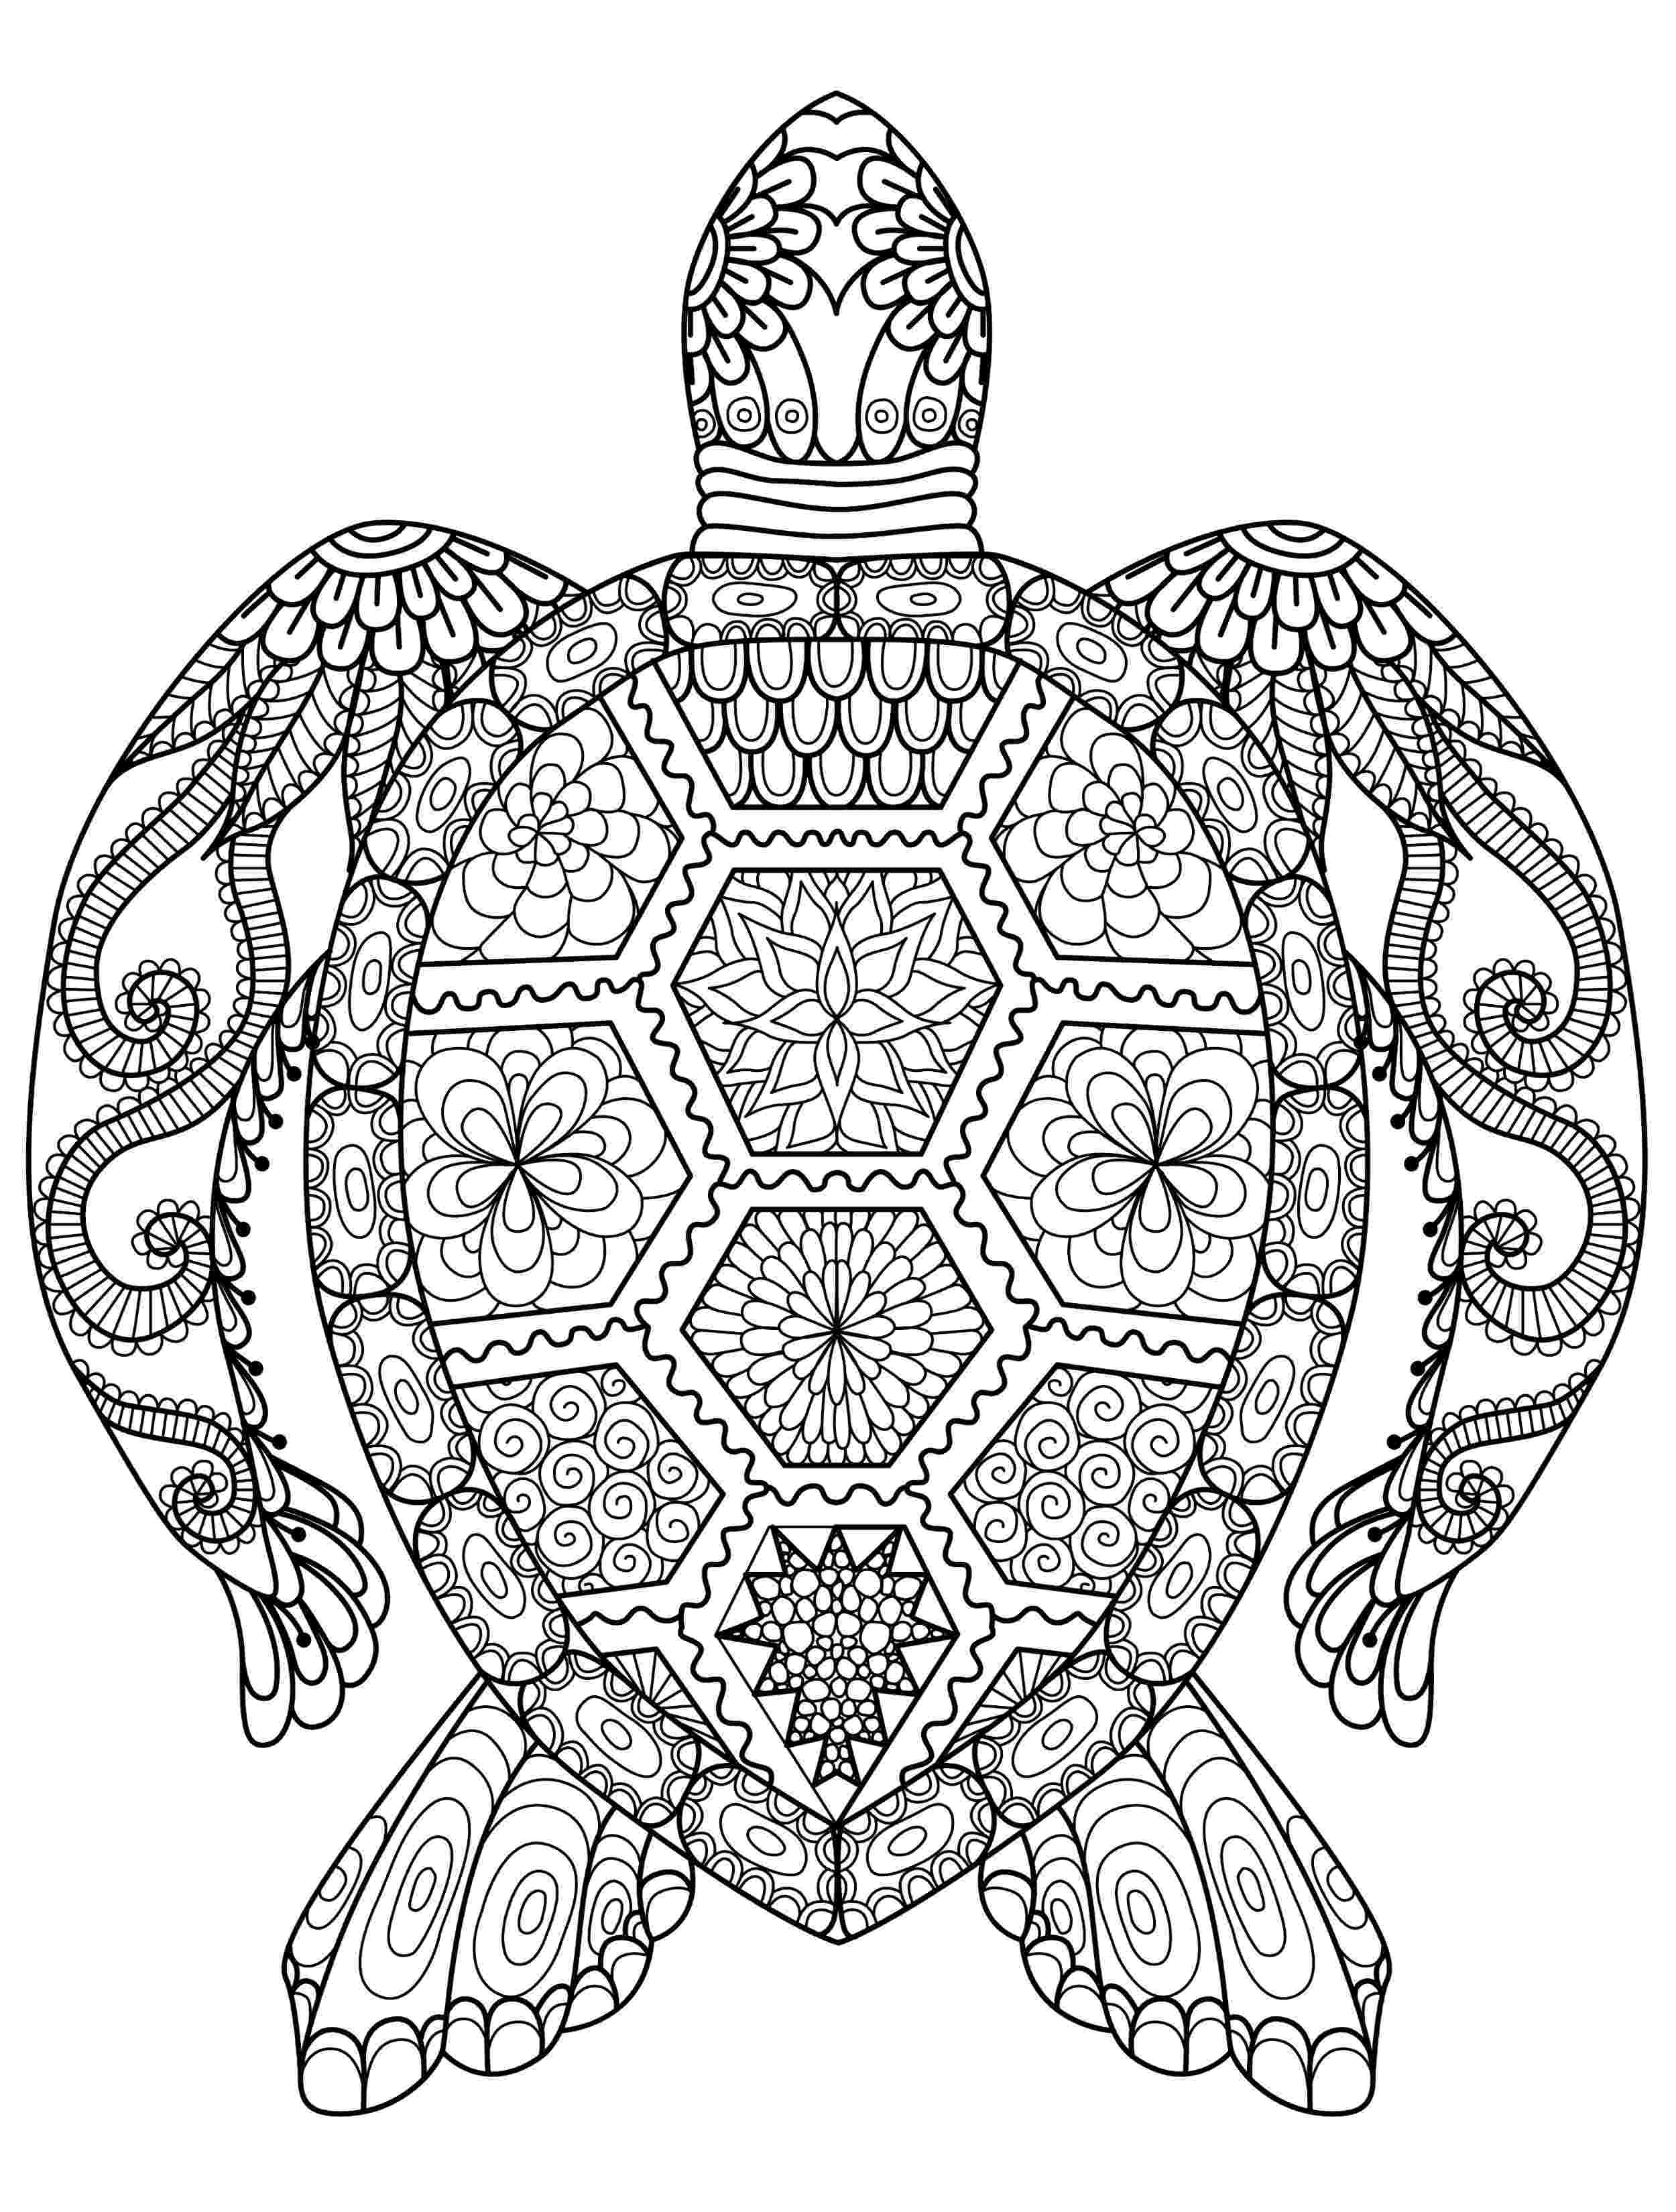 animal coloring pages adults adult coloring pages animals best coloring pages for kids pages animal coloring adults